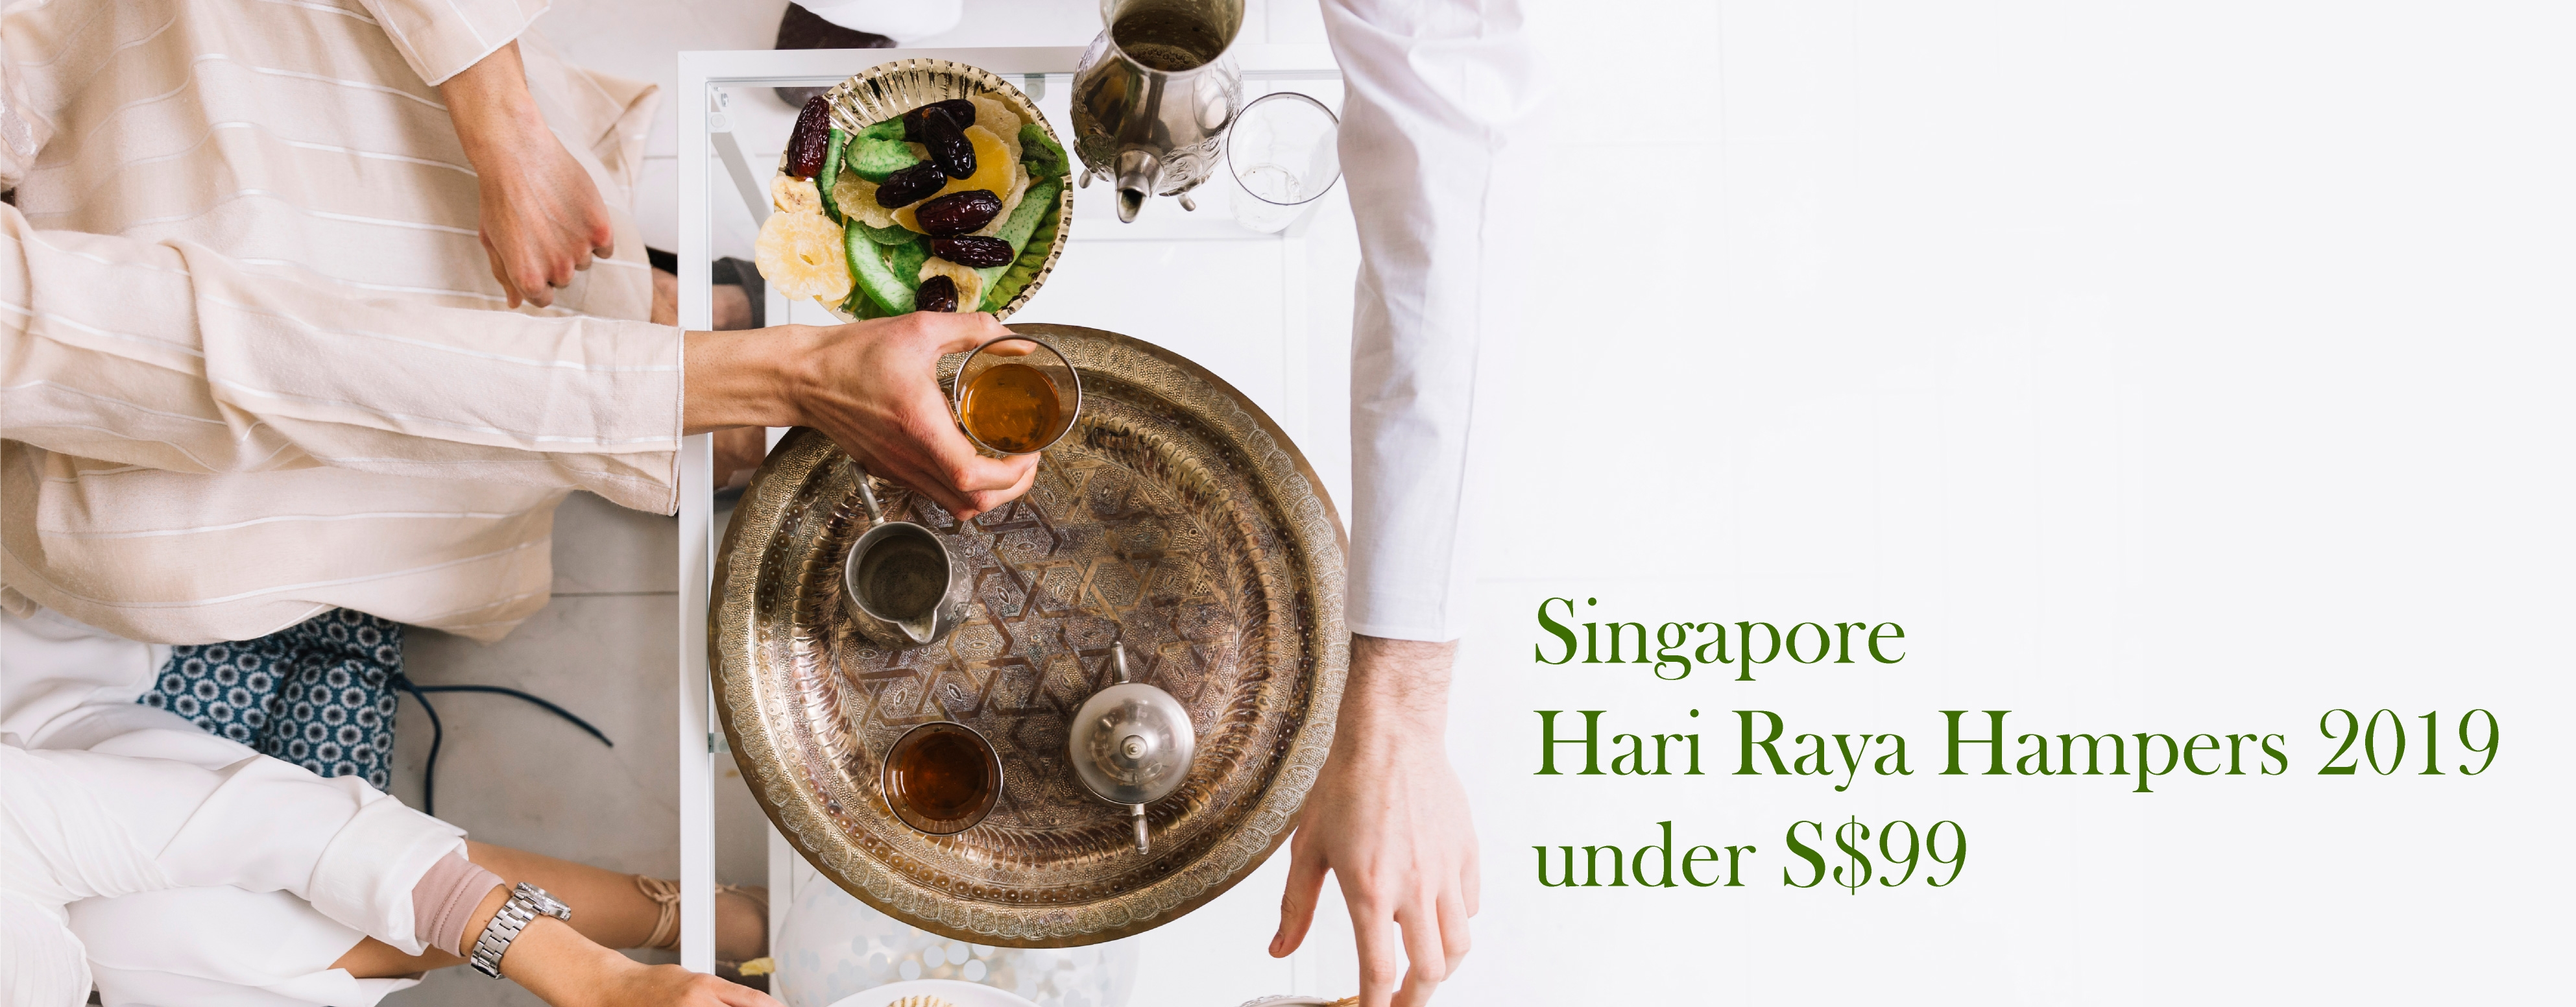 HSingapore Hari Raya Hampers 2019 under S$99